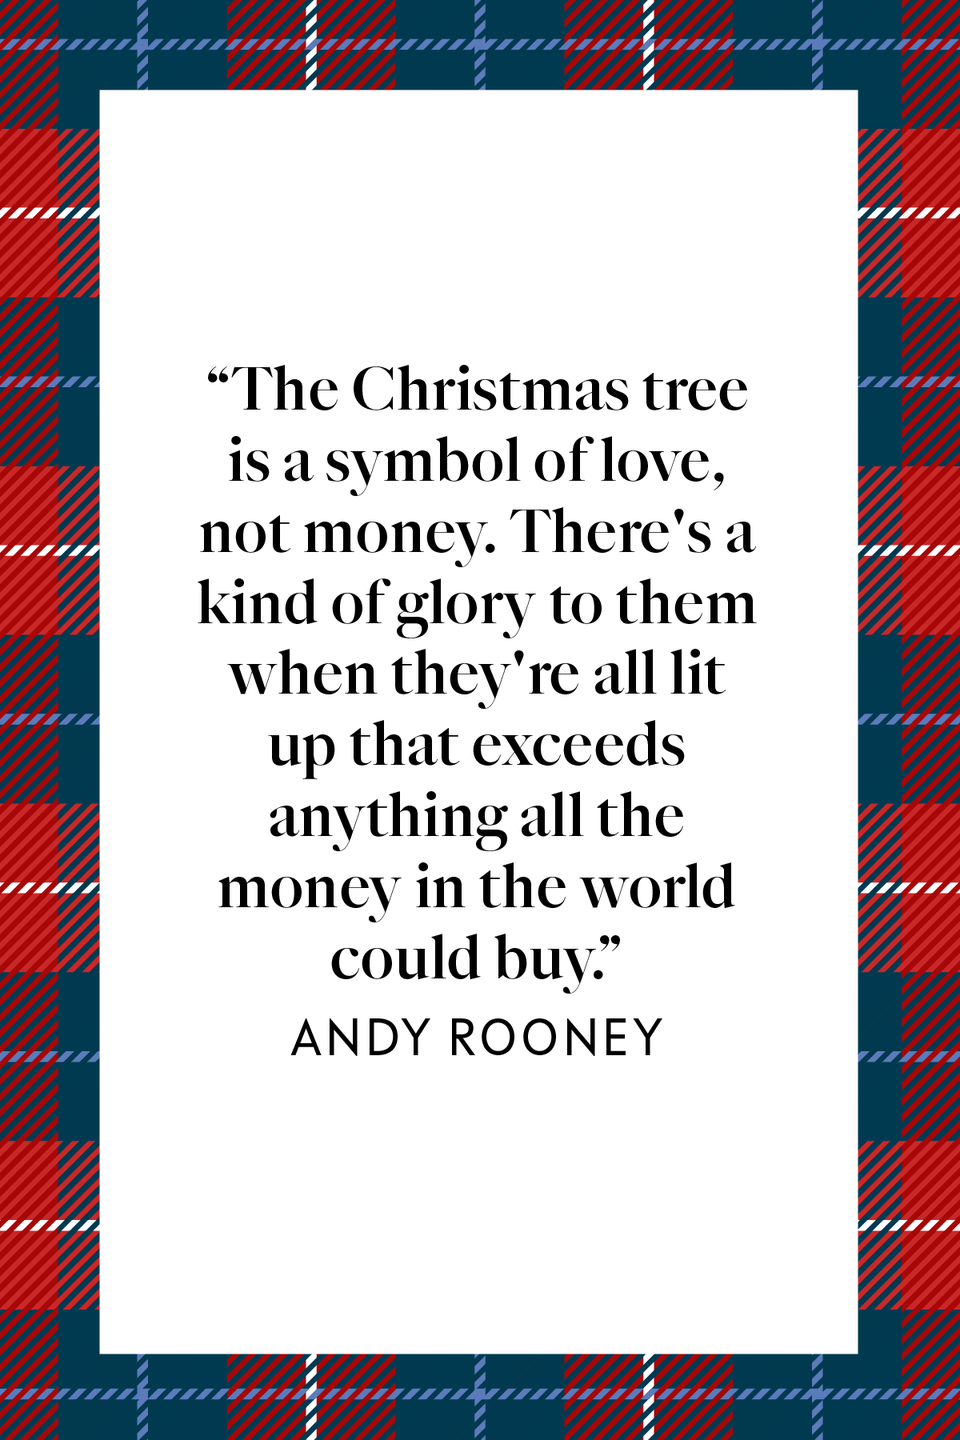 "<p>""The Christmas tree is a symbol of love, not money. There's a kind of glory to them when they're all lit up that exceeds anything all the money in the world could buy,"" TV and radio writer said in his book <em><a href=""https://www.amazon.com/Andy-Rooney-Years-Wisdom-Wit/dp/1586489038?tag=syn-yahoo-20&ascsubtag=%5Bartid%7C10072.g.34536312%5Bsrc%7Cyahoo-us"" rel=""nofollow noopener"" target=""_blank"" data-ylk=""slk:Andy Rooney: 60 Years of Wisdom and Wit"" class=""link rapid-noclick-resp"">Andy Rooney: 60 Years of Wisdom and Wit</a>. </em></p>"